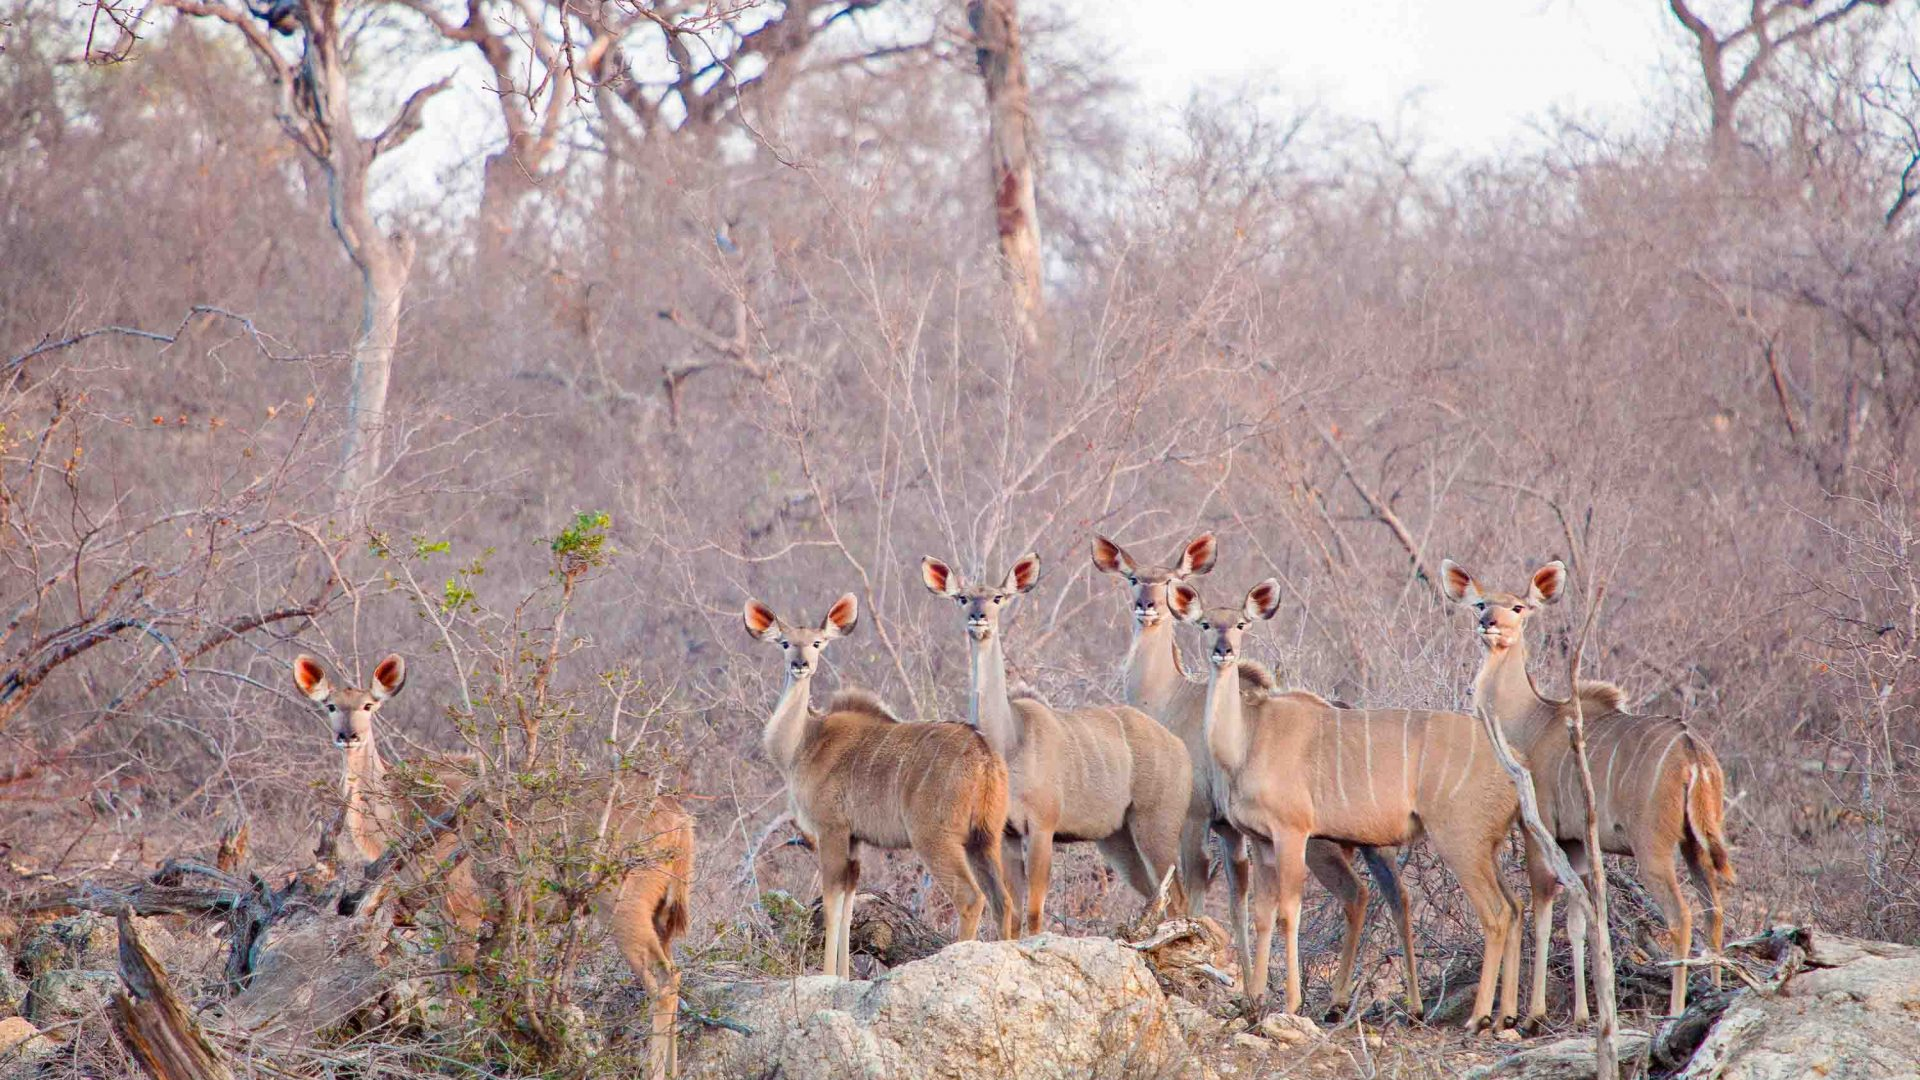 Greater kudus in Balule Nature Reserve in South Africa.